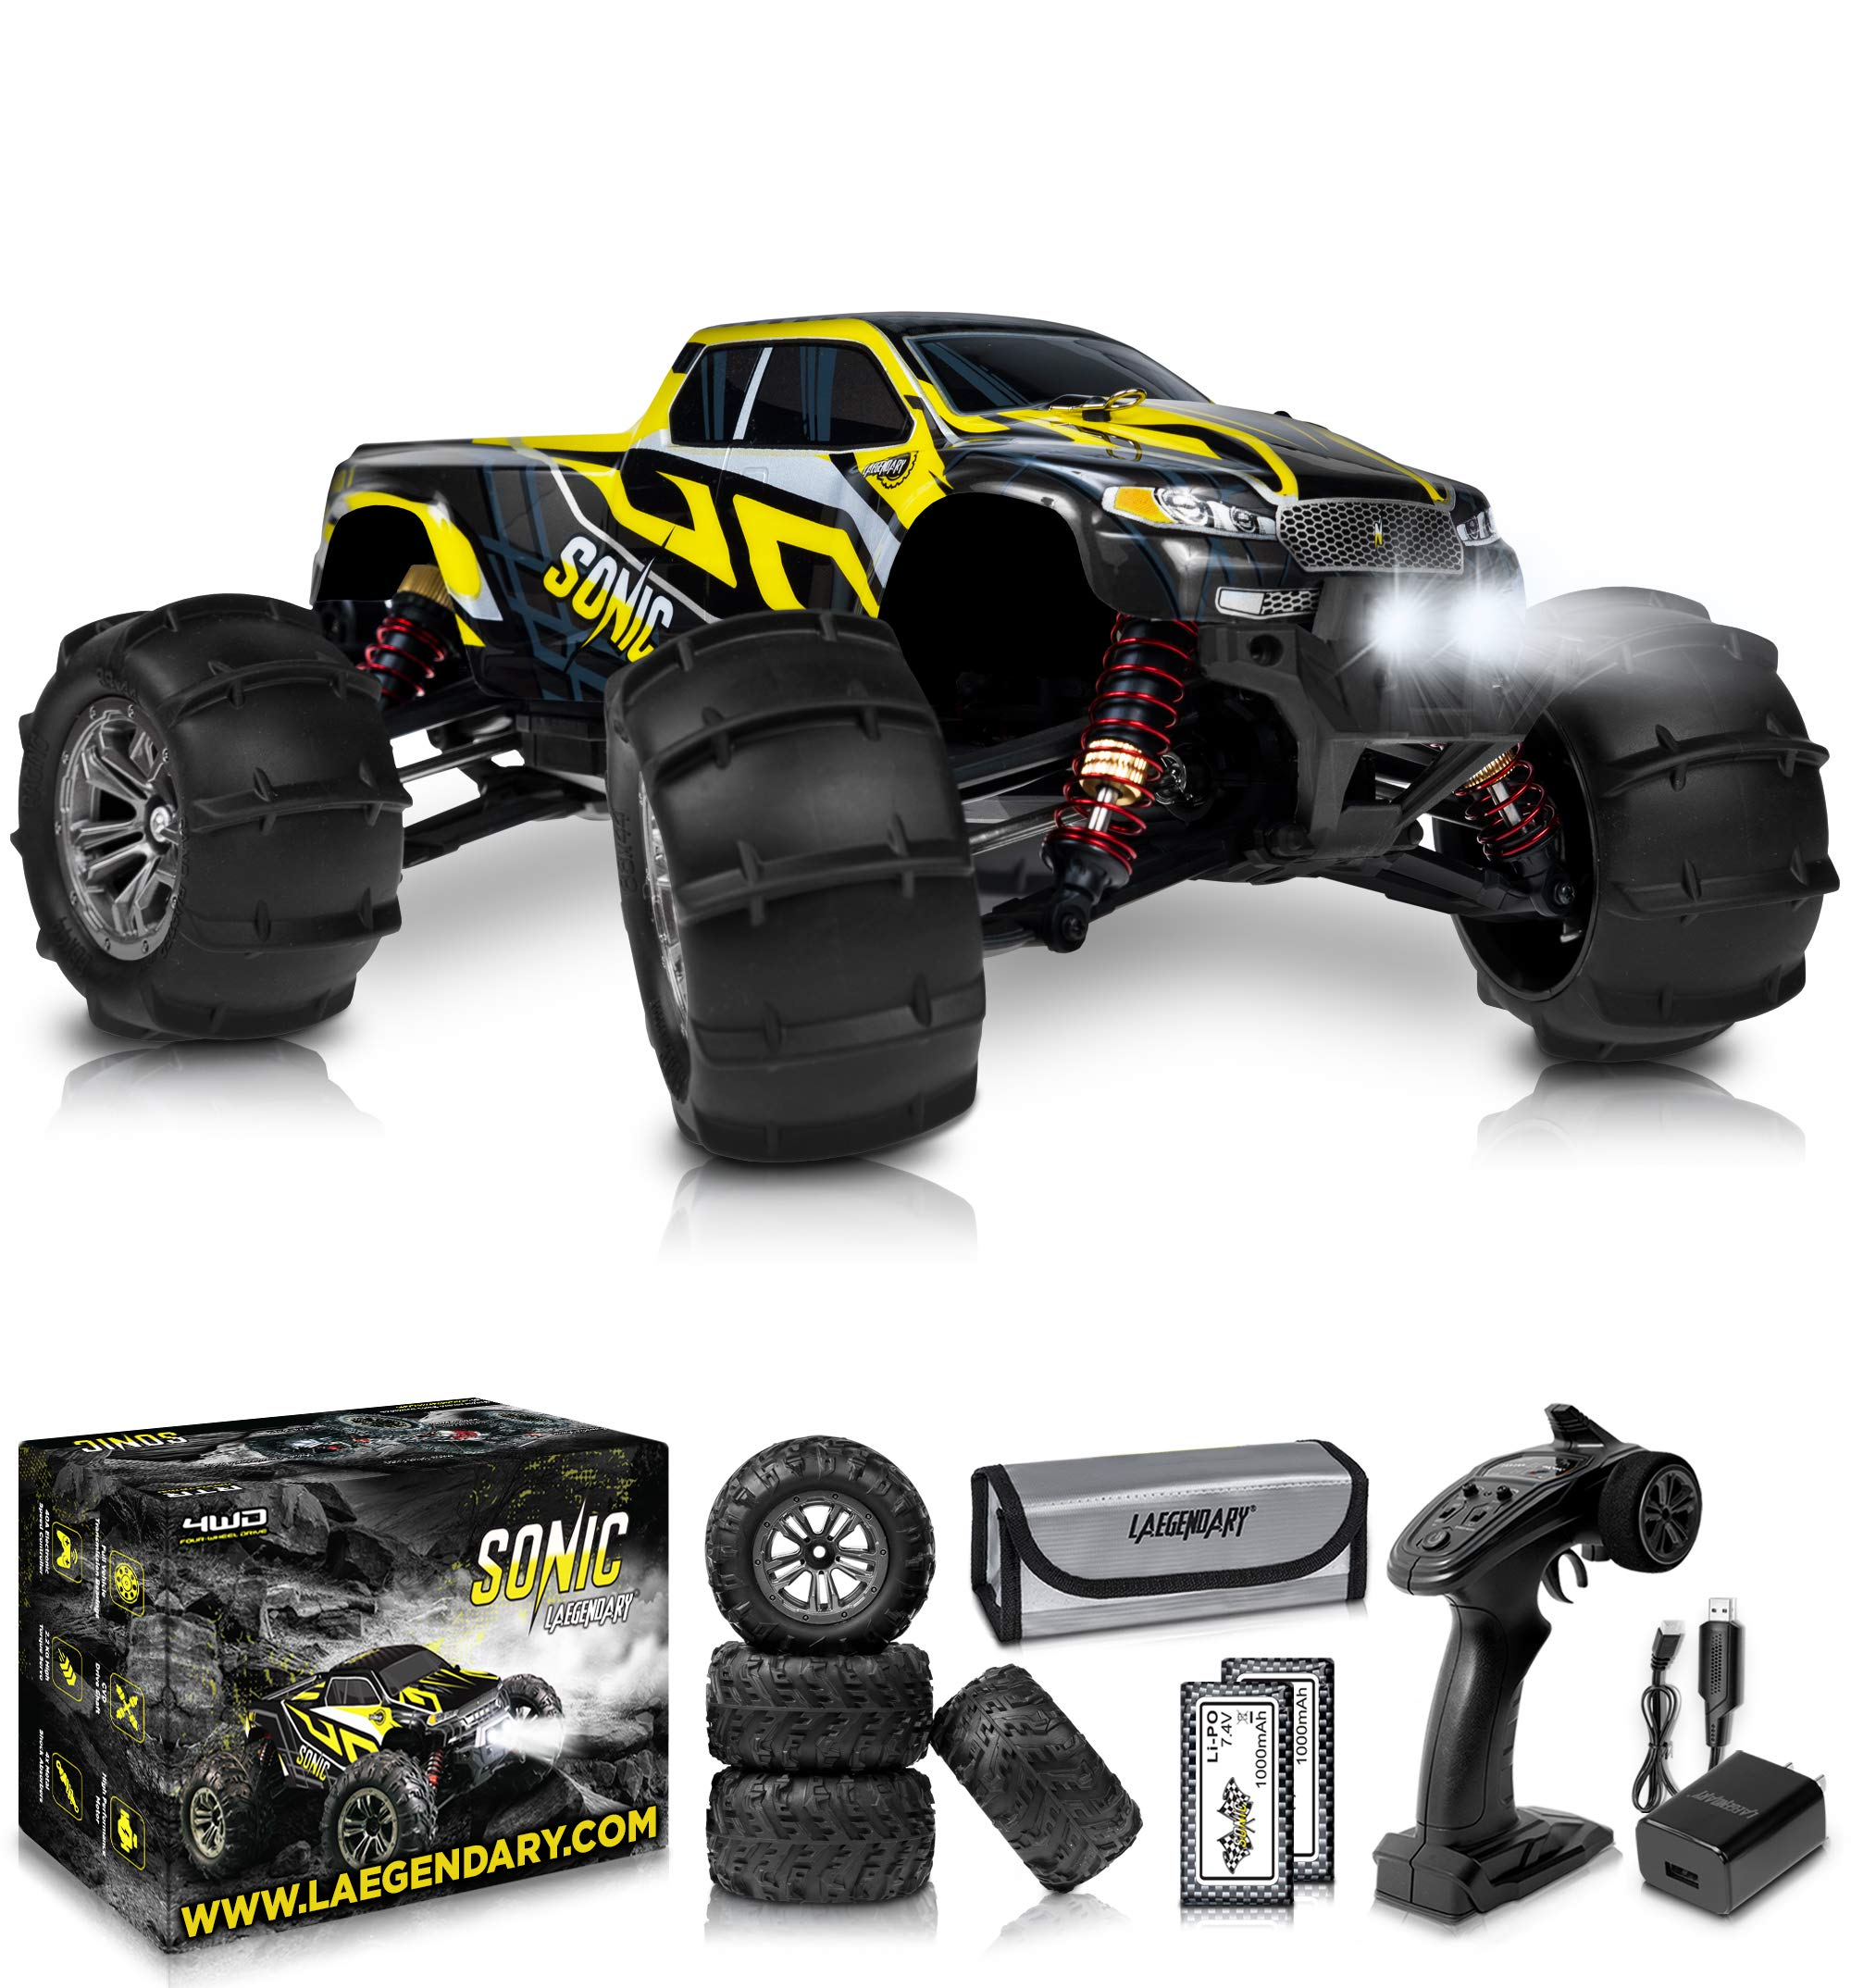 1 16 Brushless Large Rc Cars 55 Kmh Speed Kids And Adults Remote Control Car 4x4 Off Road Monster Truck Electric All Terrain Waterproof Toys Trucks For Boys Girls 2